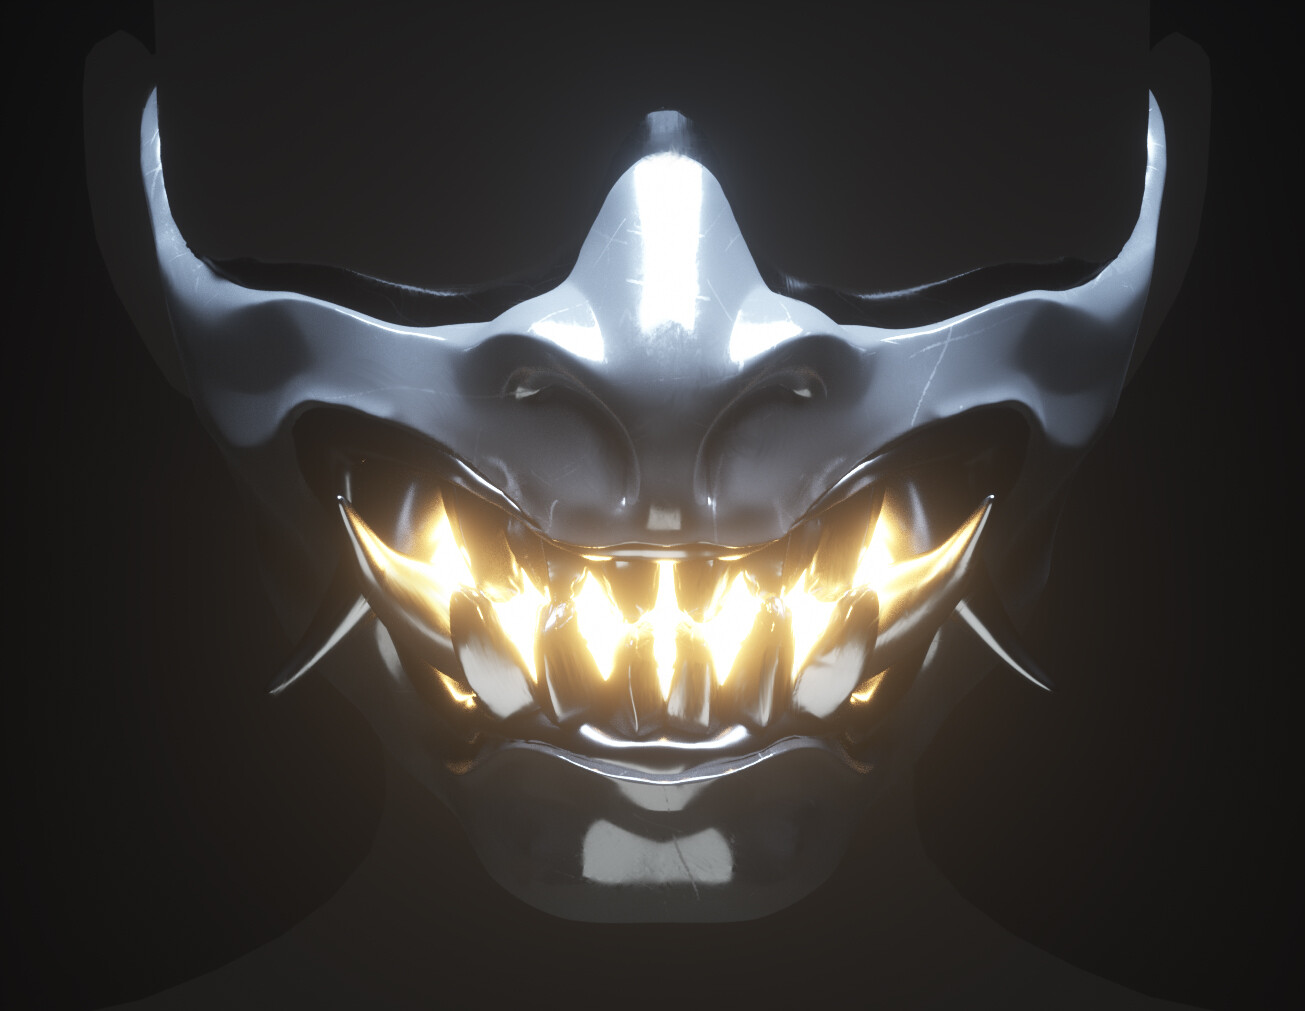 Oni Mask with glowing emission. I thought it was a nice added touch.